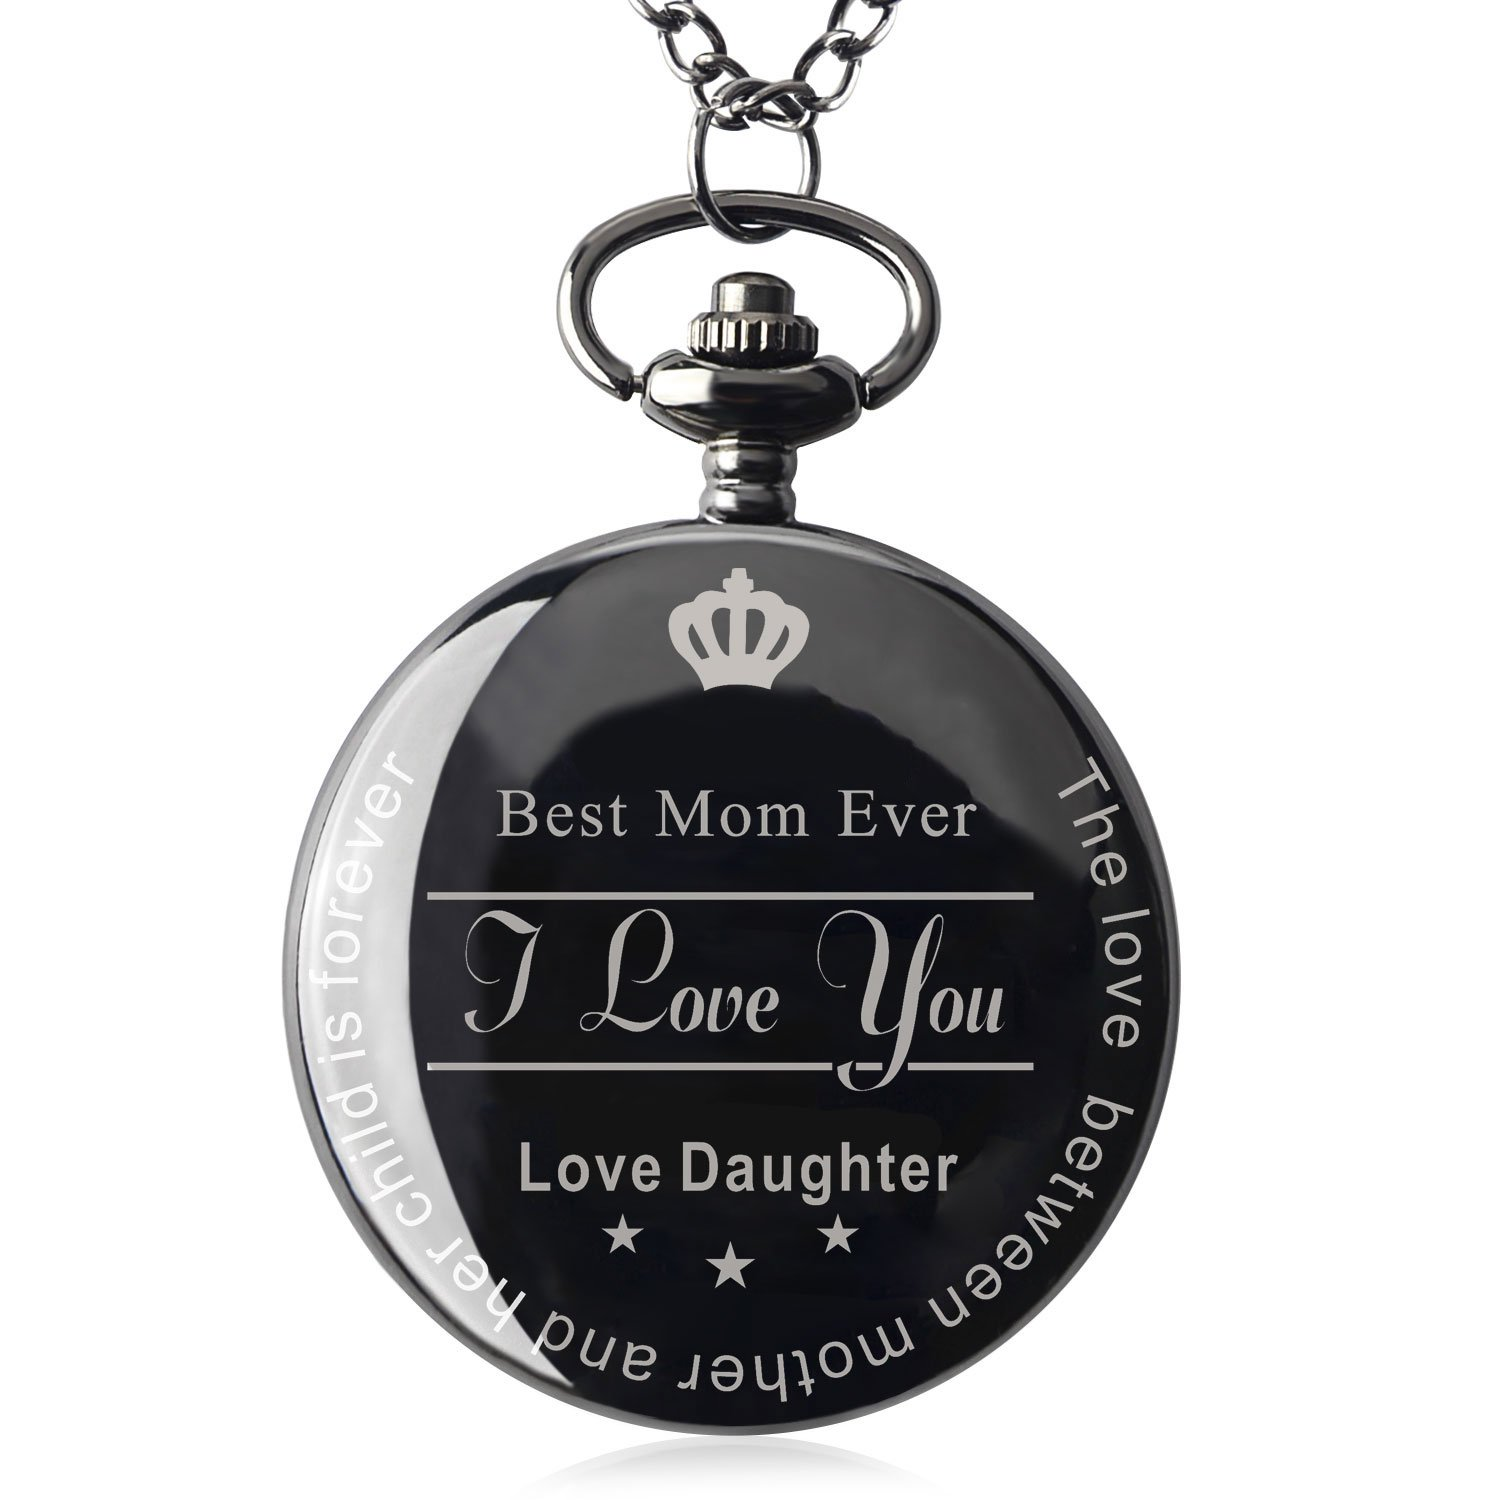 Qise Pocket Watch To Best Mom Ever Necklace Chain From Daughter to Mother's Day Gifts for Women Surprise Gift Ideas for Mother with Gift Box (Love Daughter)